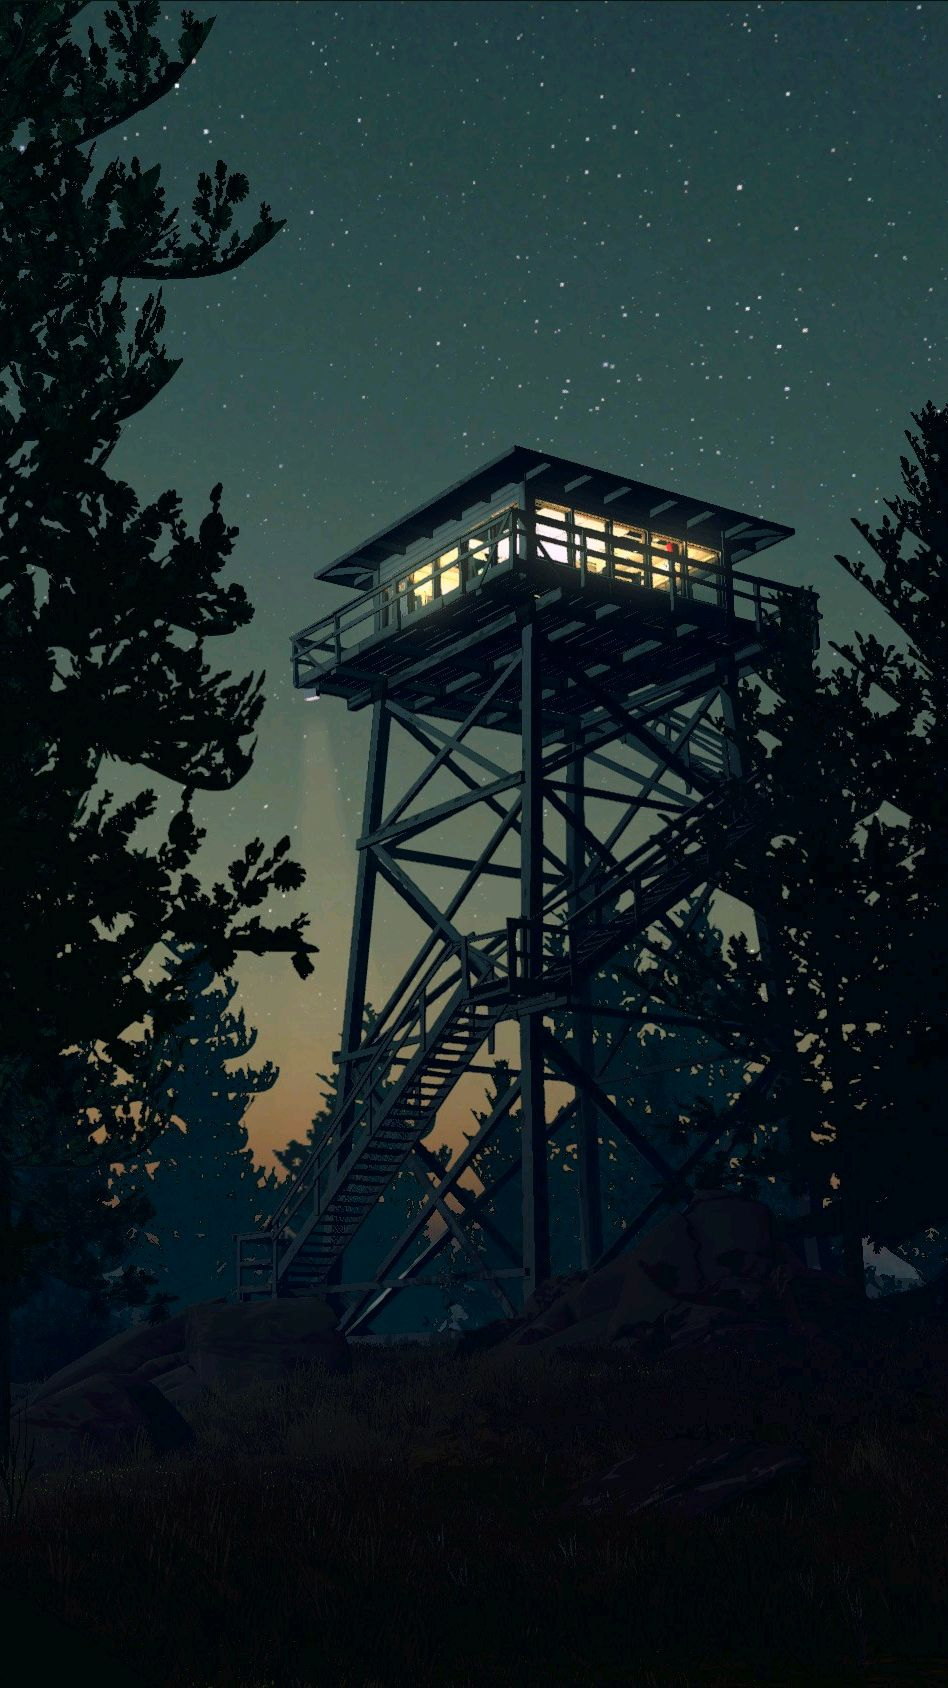 Cute Anime Wallpaper For Phone Firewatch Game Minimal Tower Night Iphone Wallpaper